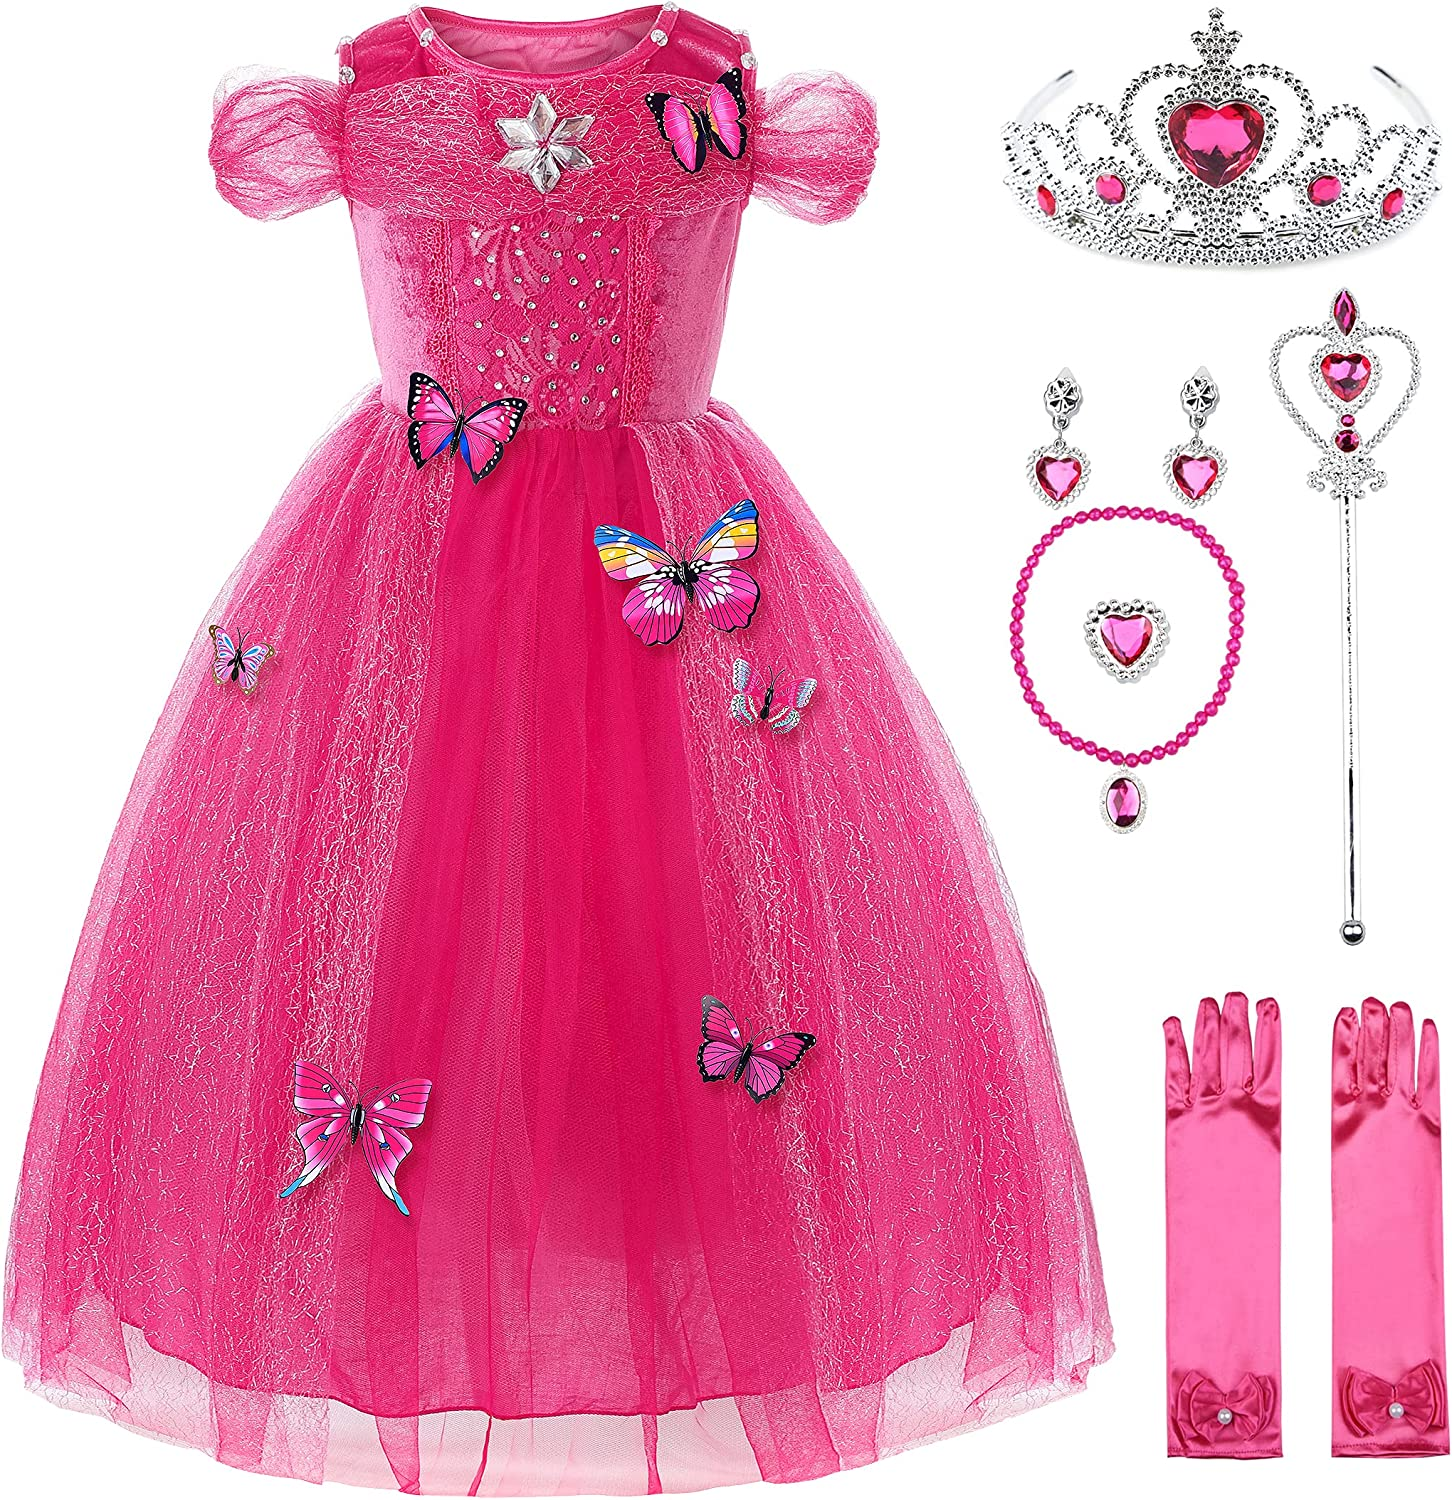 Uhdear Girls Butterlfy Princess Costume with National uniform free shipping Dress Up Deluxe List price Ace